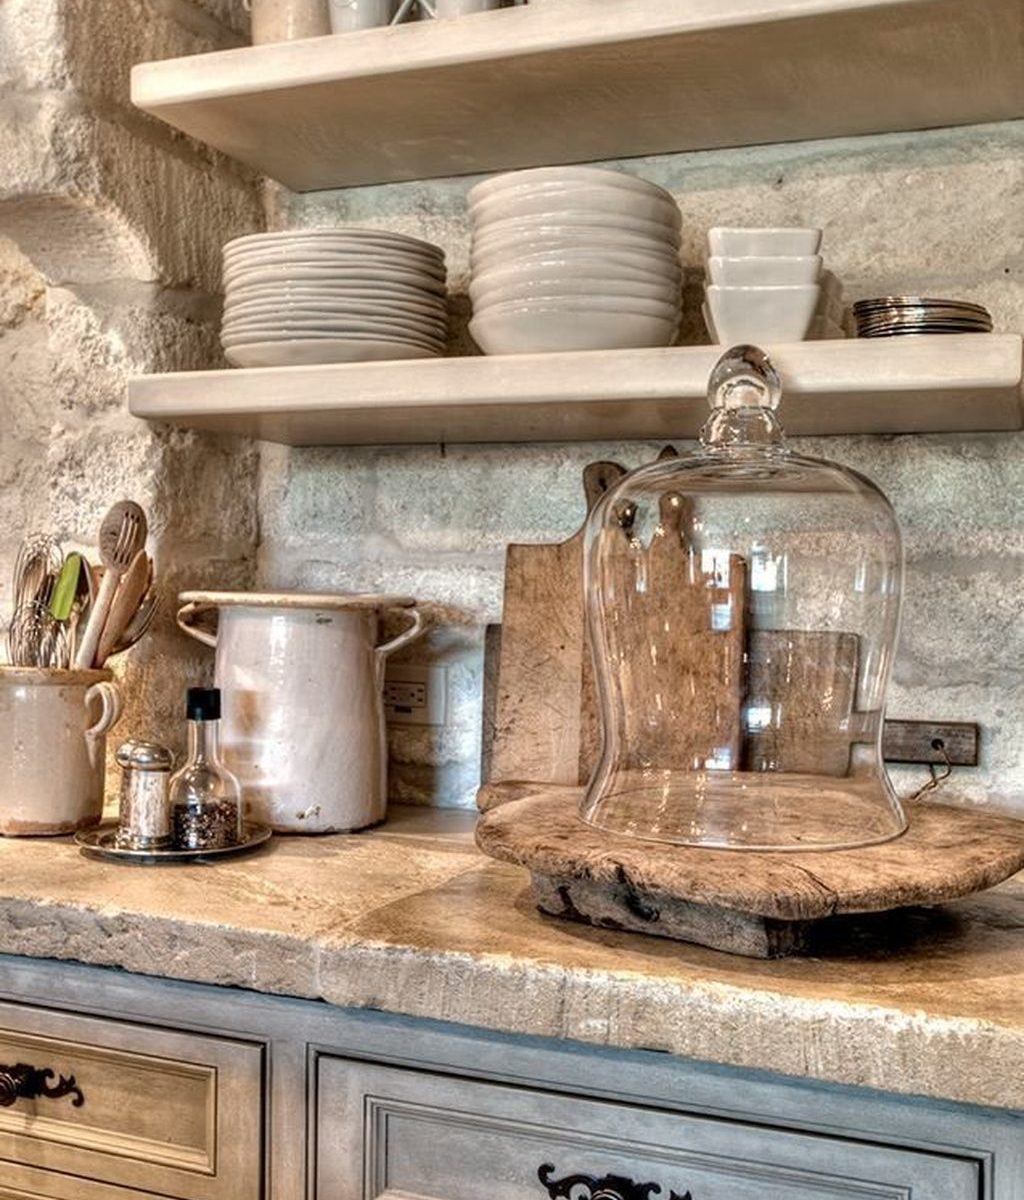 Inspiring Country Kitchen Decor Ideas You Should Copy 20